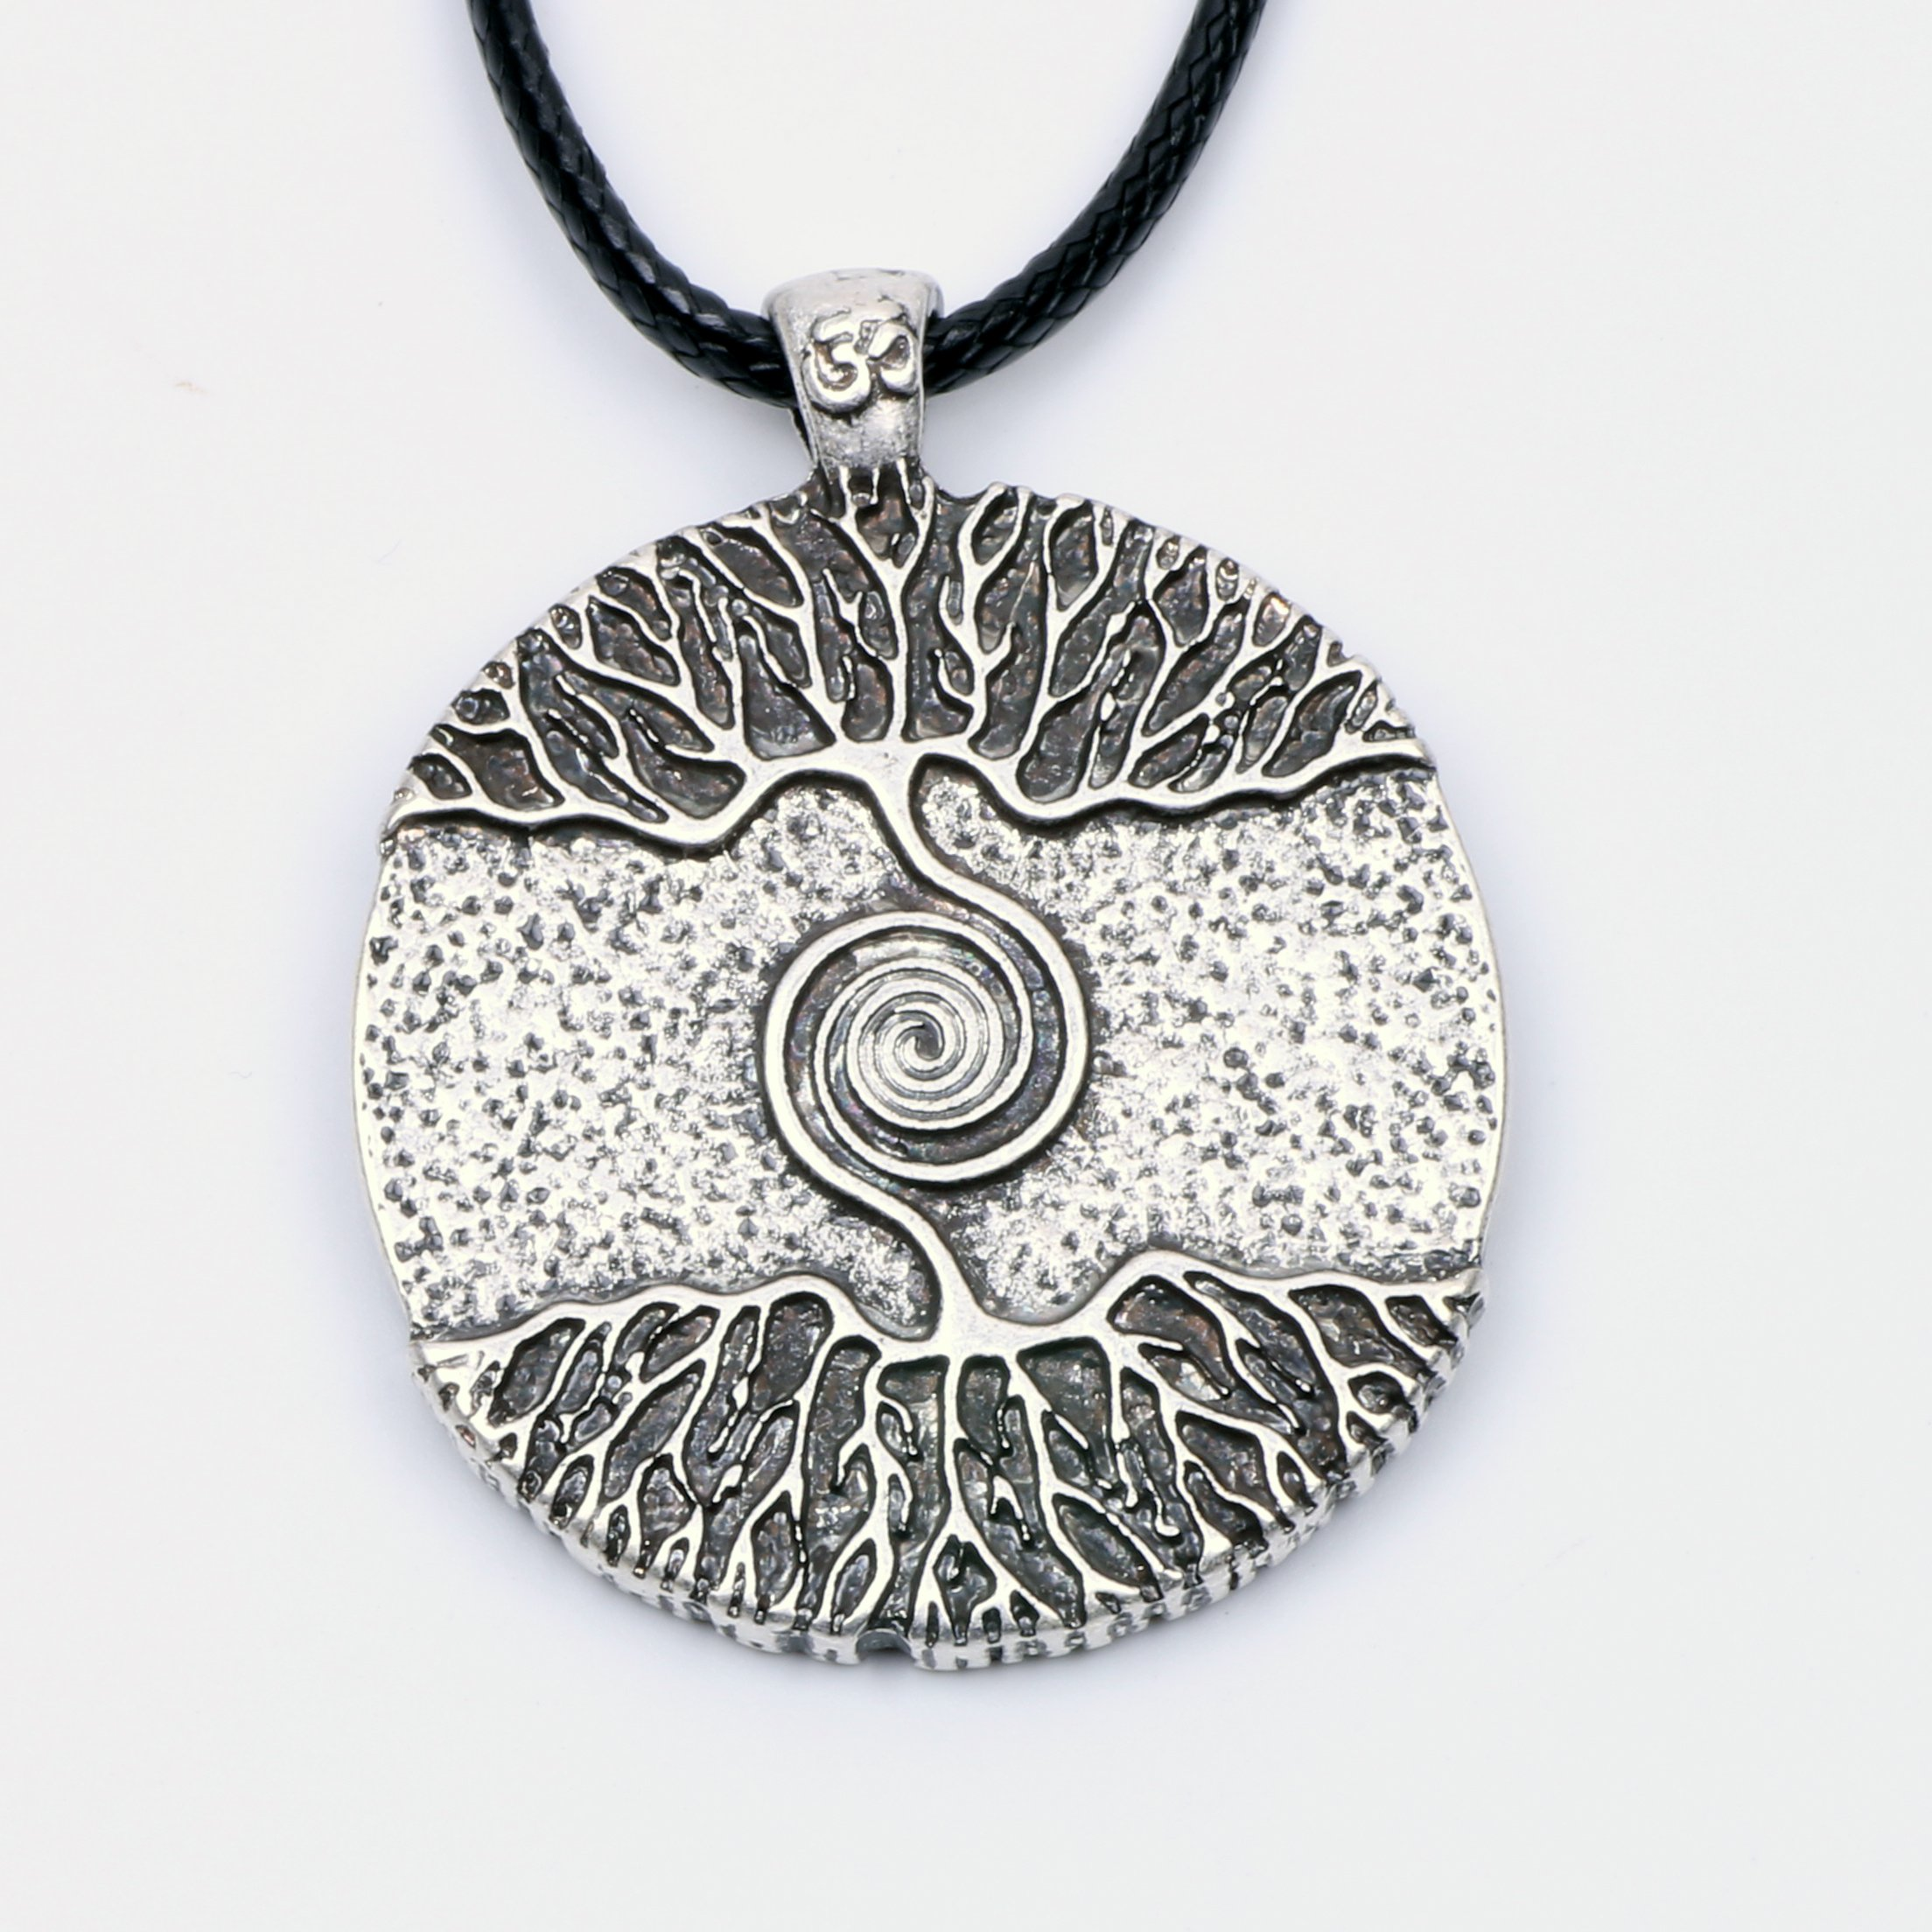 Paw Paw House Yoga Inspired Kybalion Pendant Necklace Amulet Tree of Life Talisma Chi As Above As Below As Within As Without Meditation (4082 Si) (4082) by Paw Paw House (Image #2)